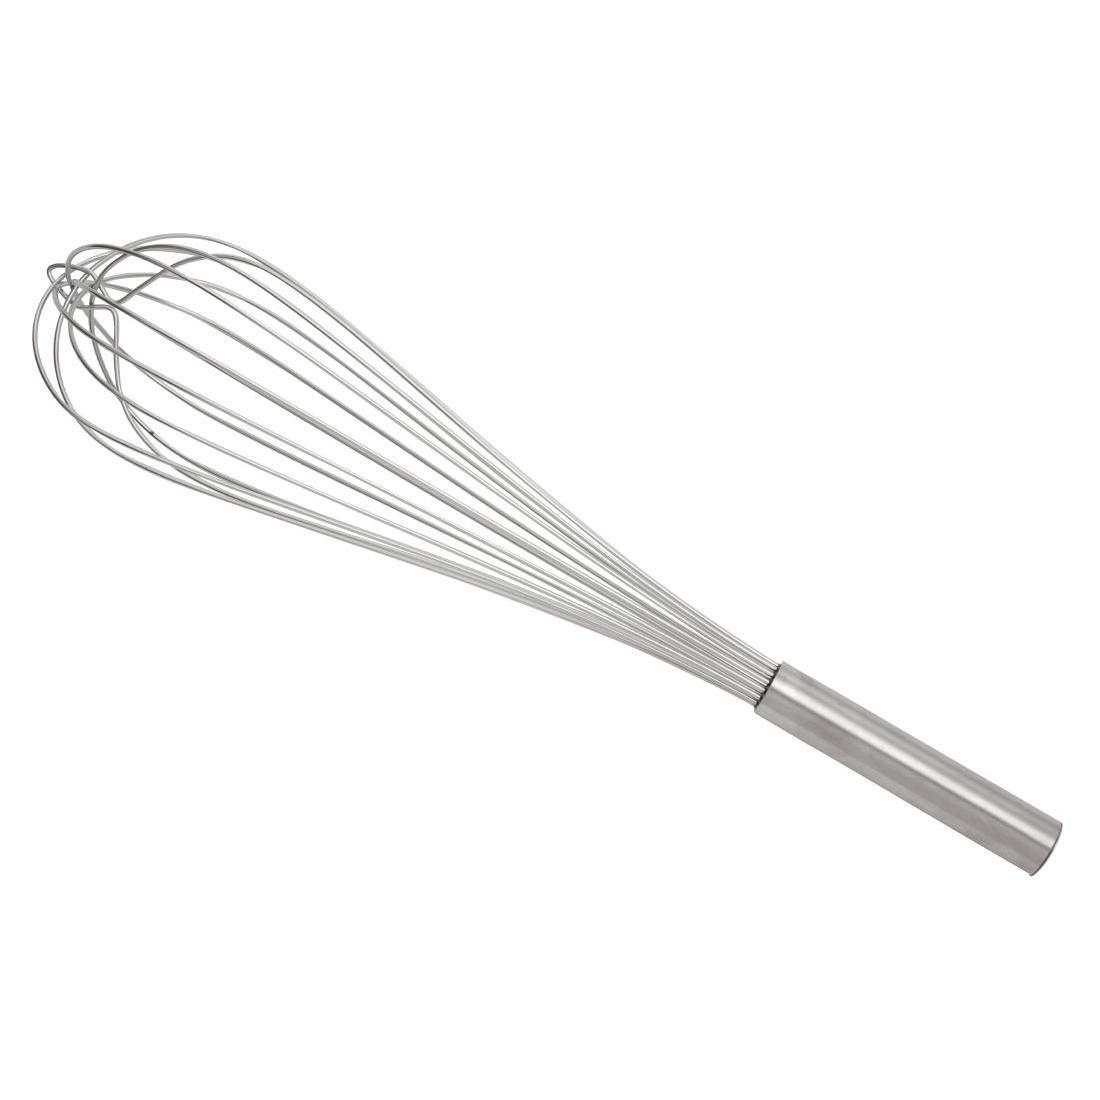 "Vogue Heavy Whisk 20"" - M968"